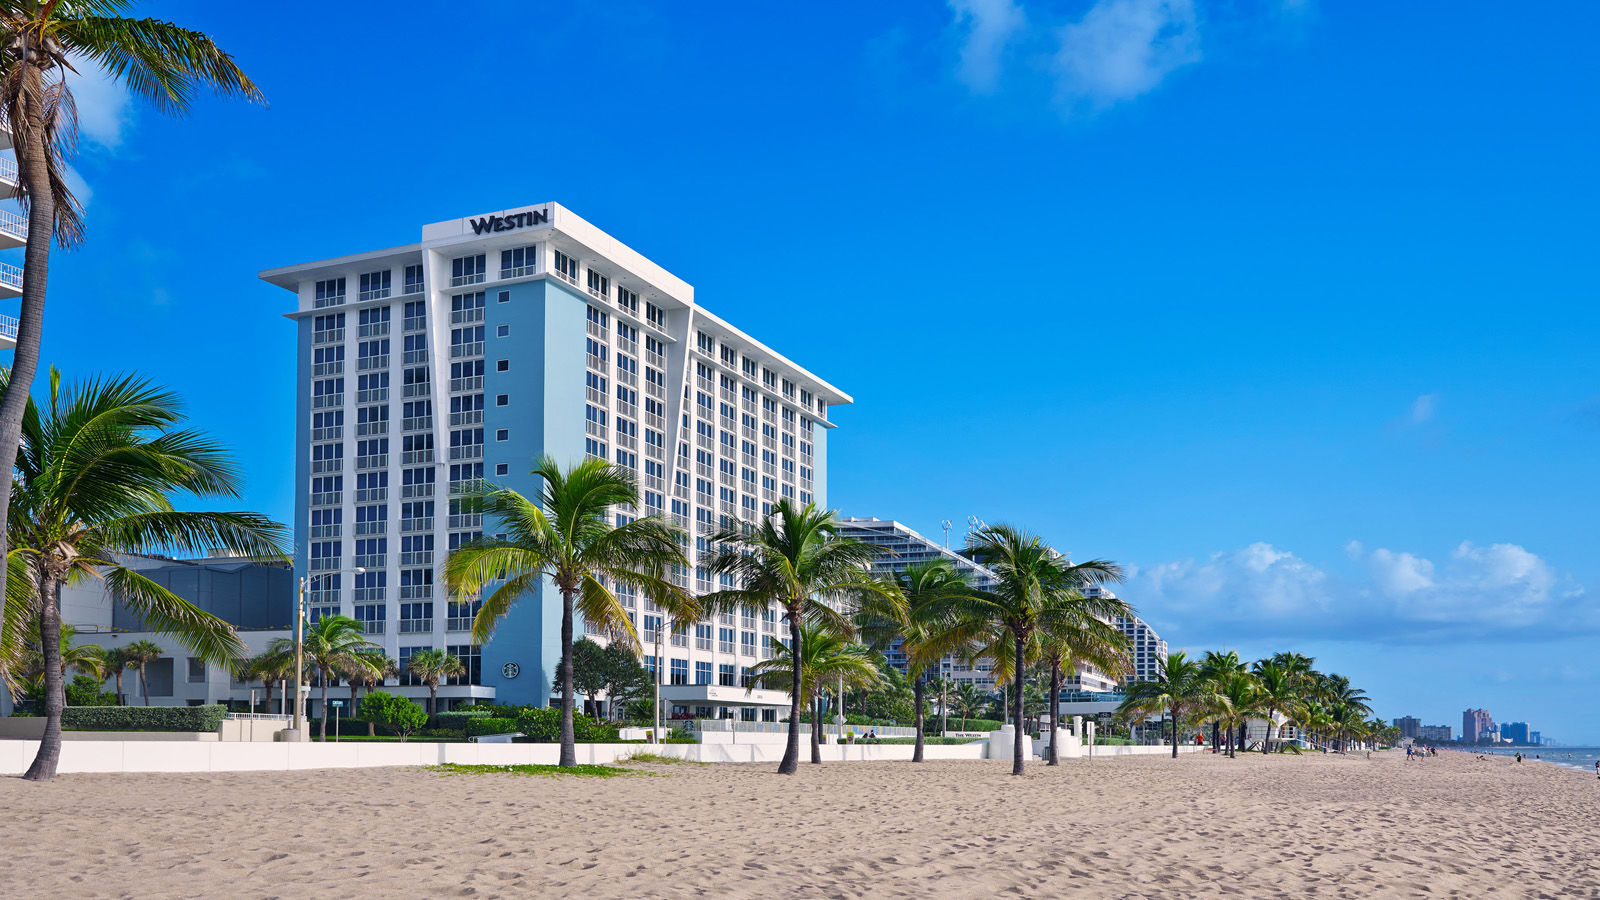 The Westin Fort Lauderdale Beach Resort - Fort Lauderdale Beach